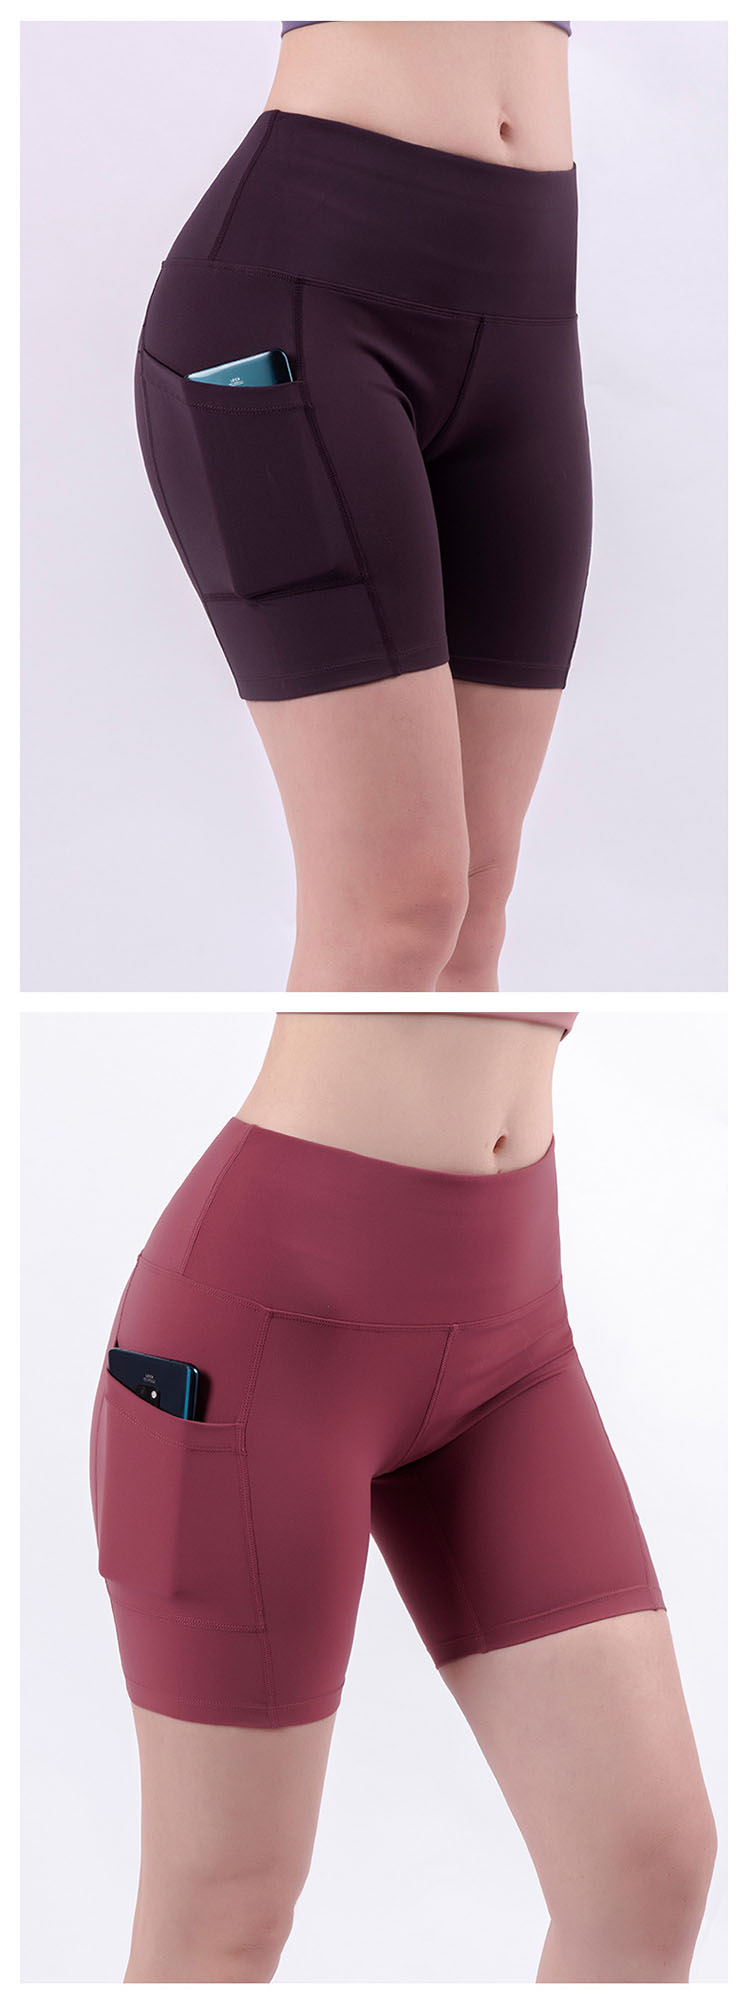 To achieve effective division of hip and leg lines, clean and neat, quick-drying, breathable and perspiration.